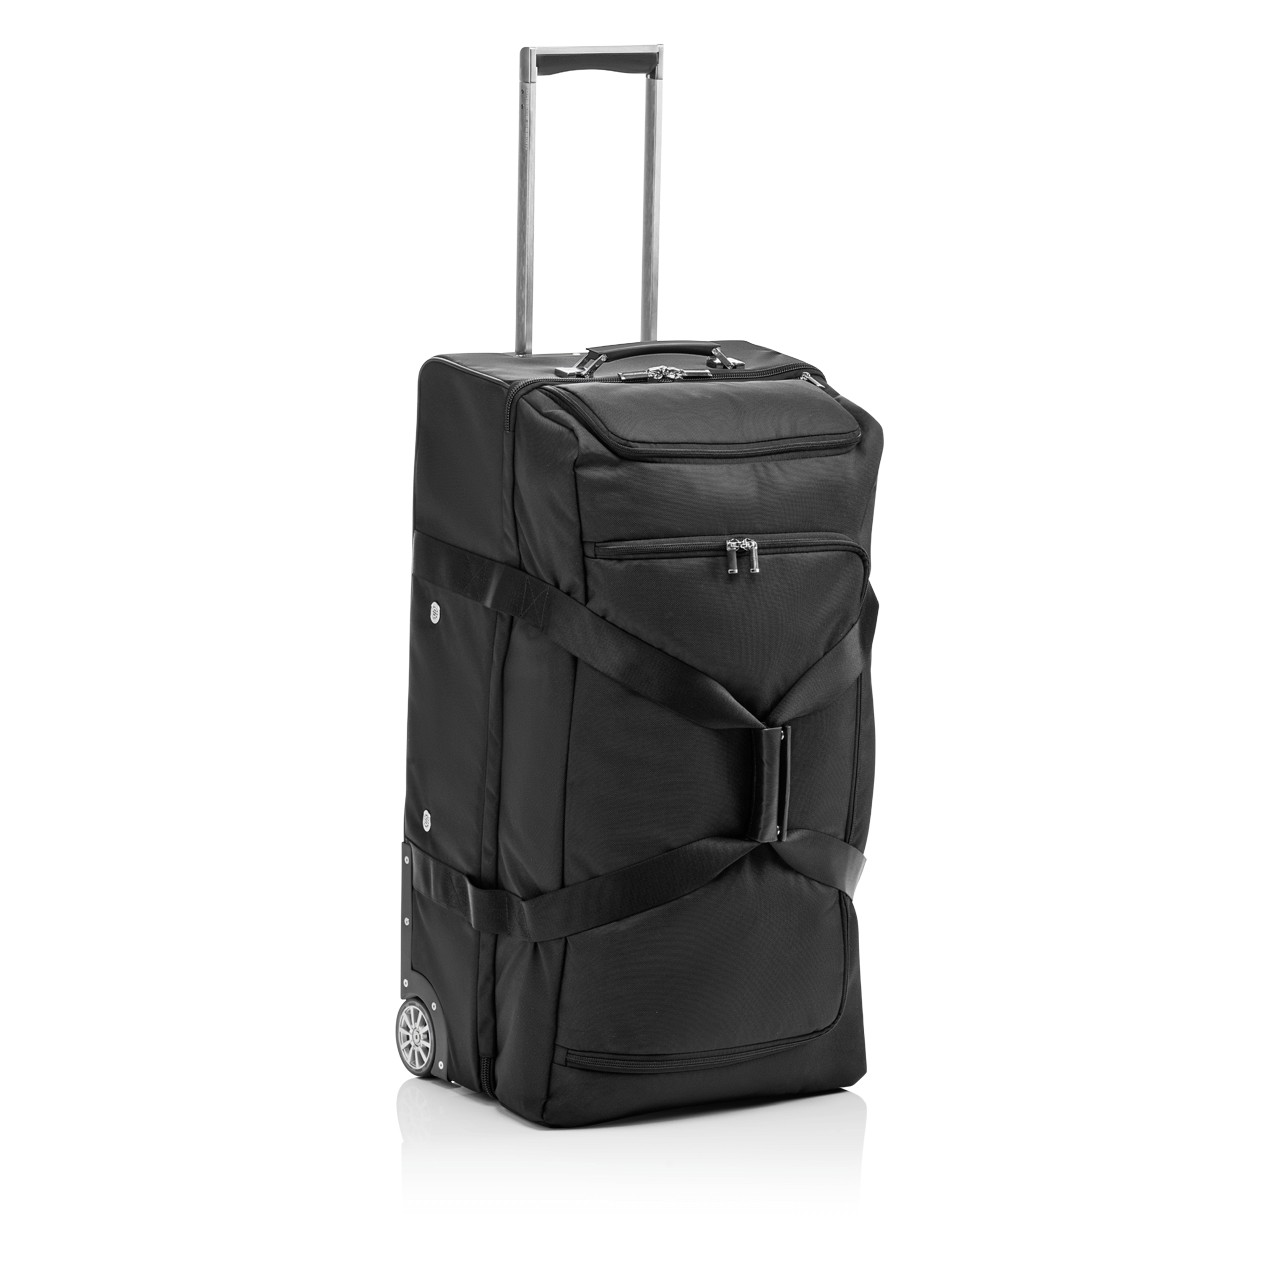 ROADSTER SOFTCASE SERIES TRAVELBAG L - фото 1